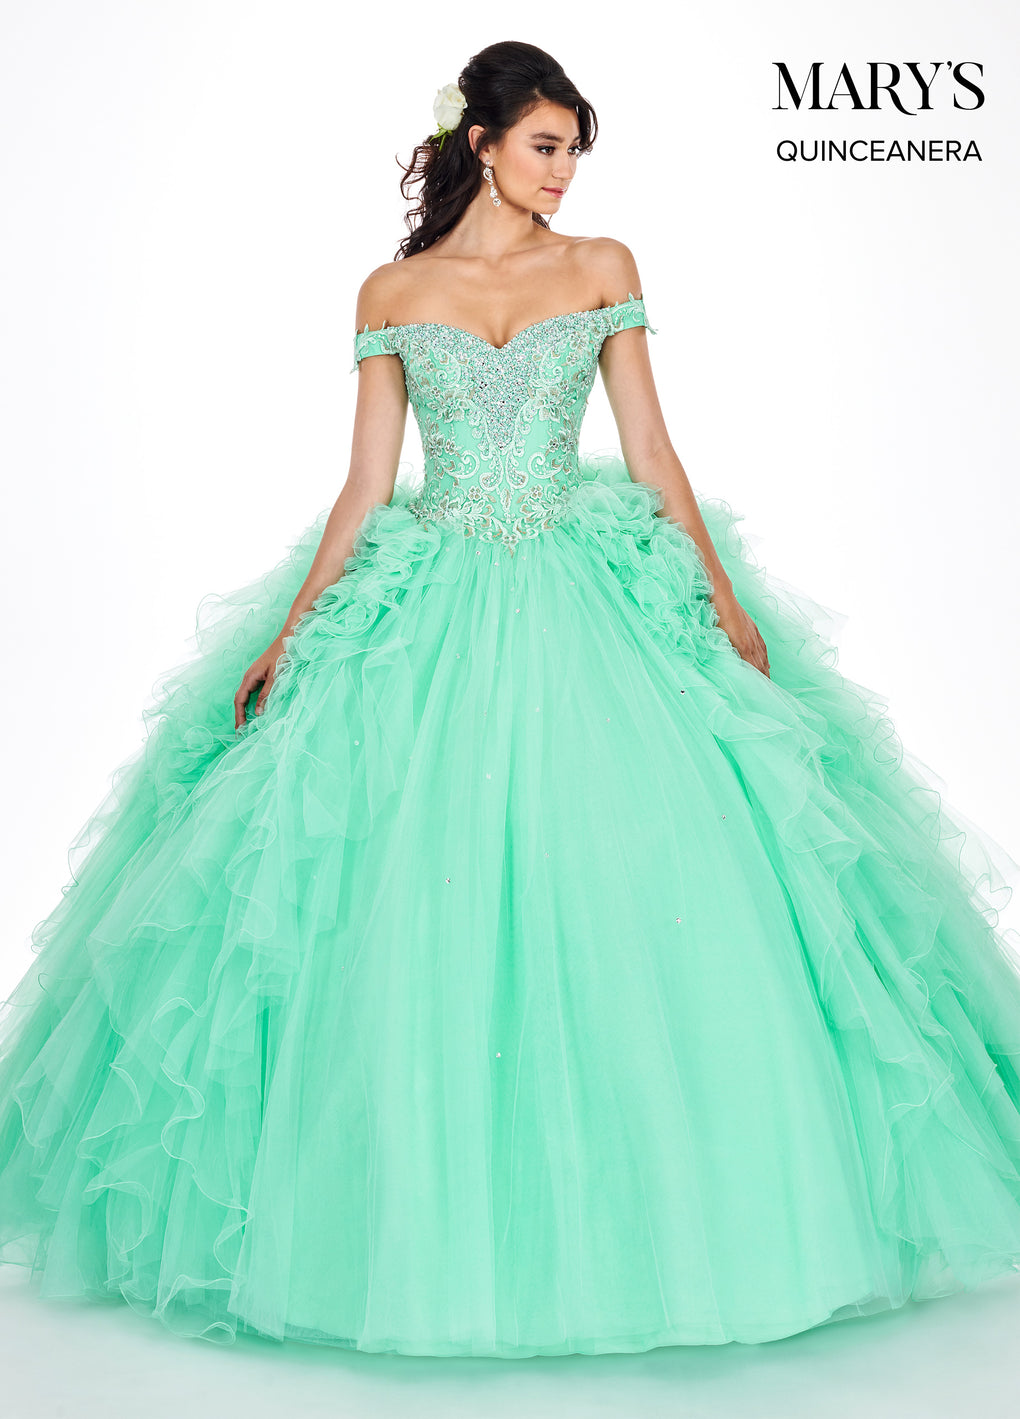 Marys Quinceanera Dresses in Violet, Mint, or Blush Color